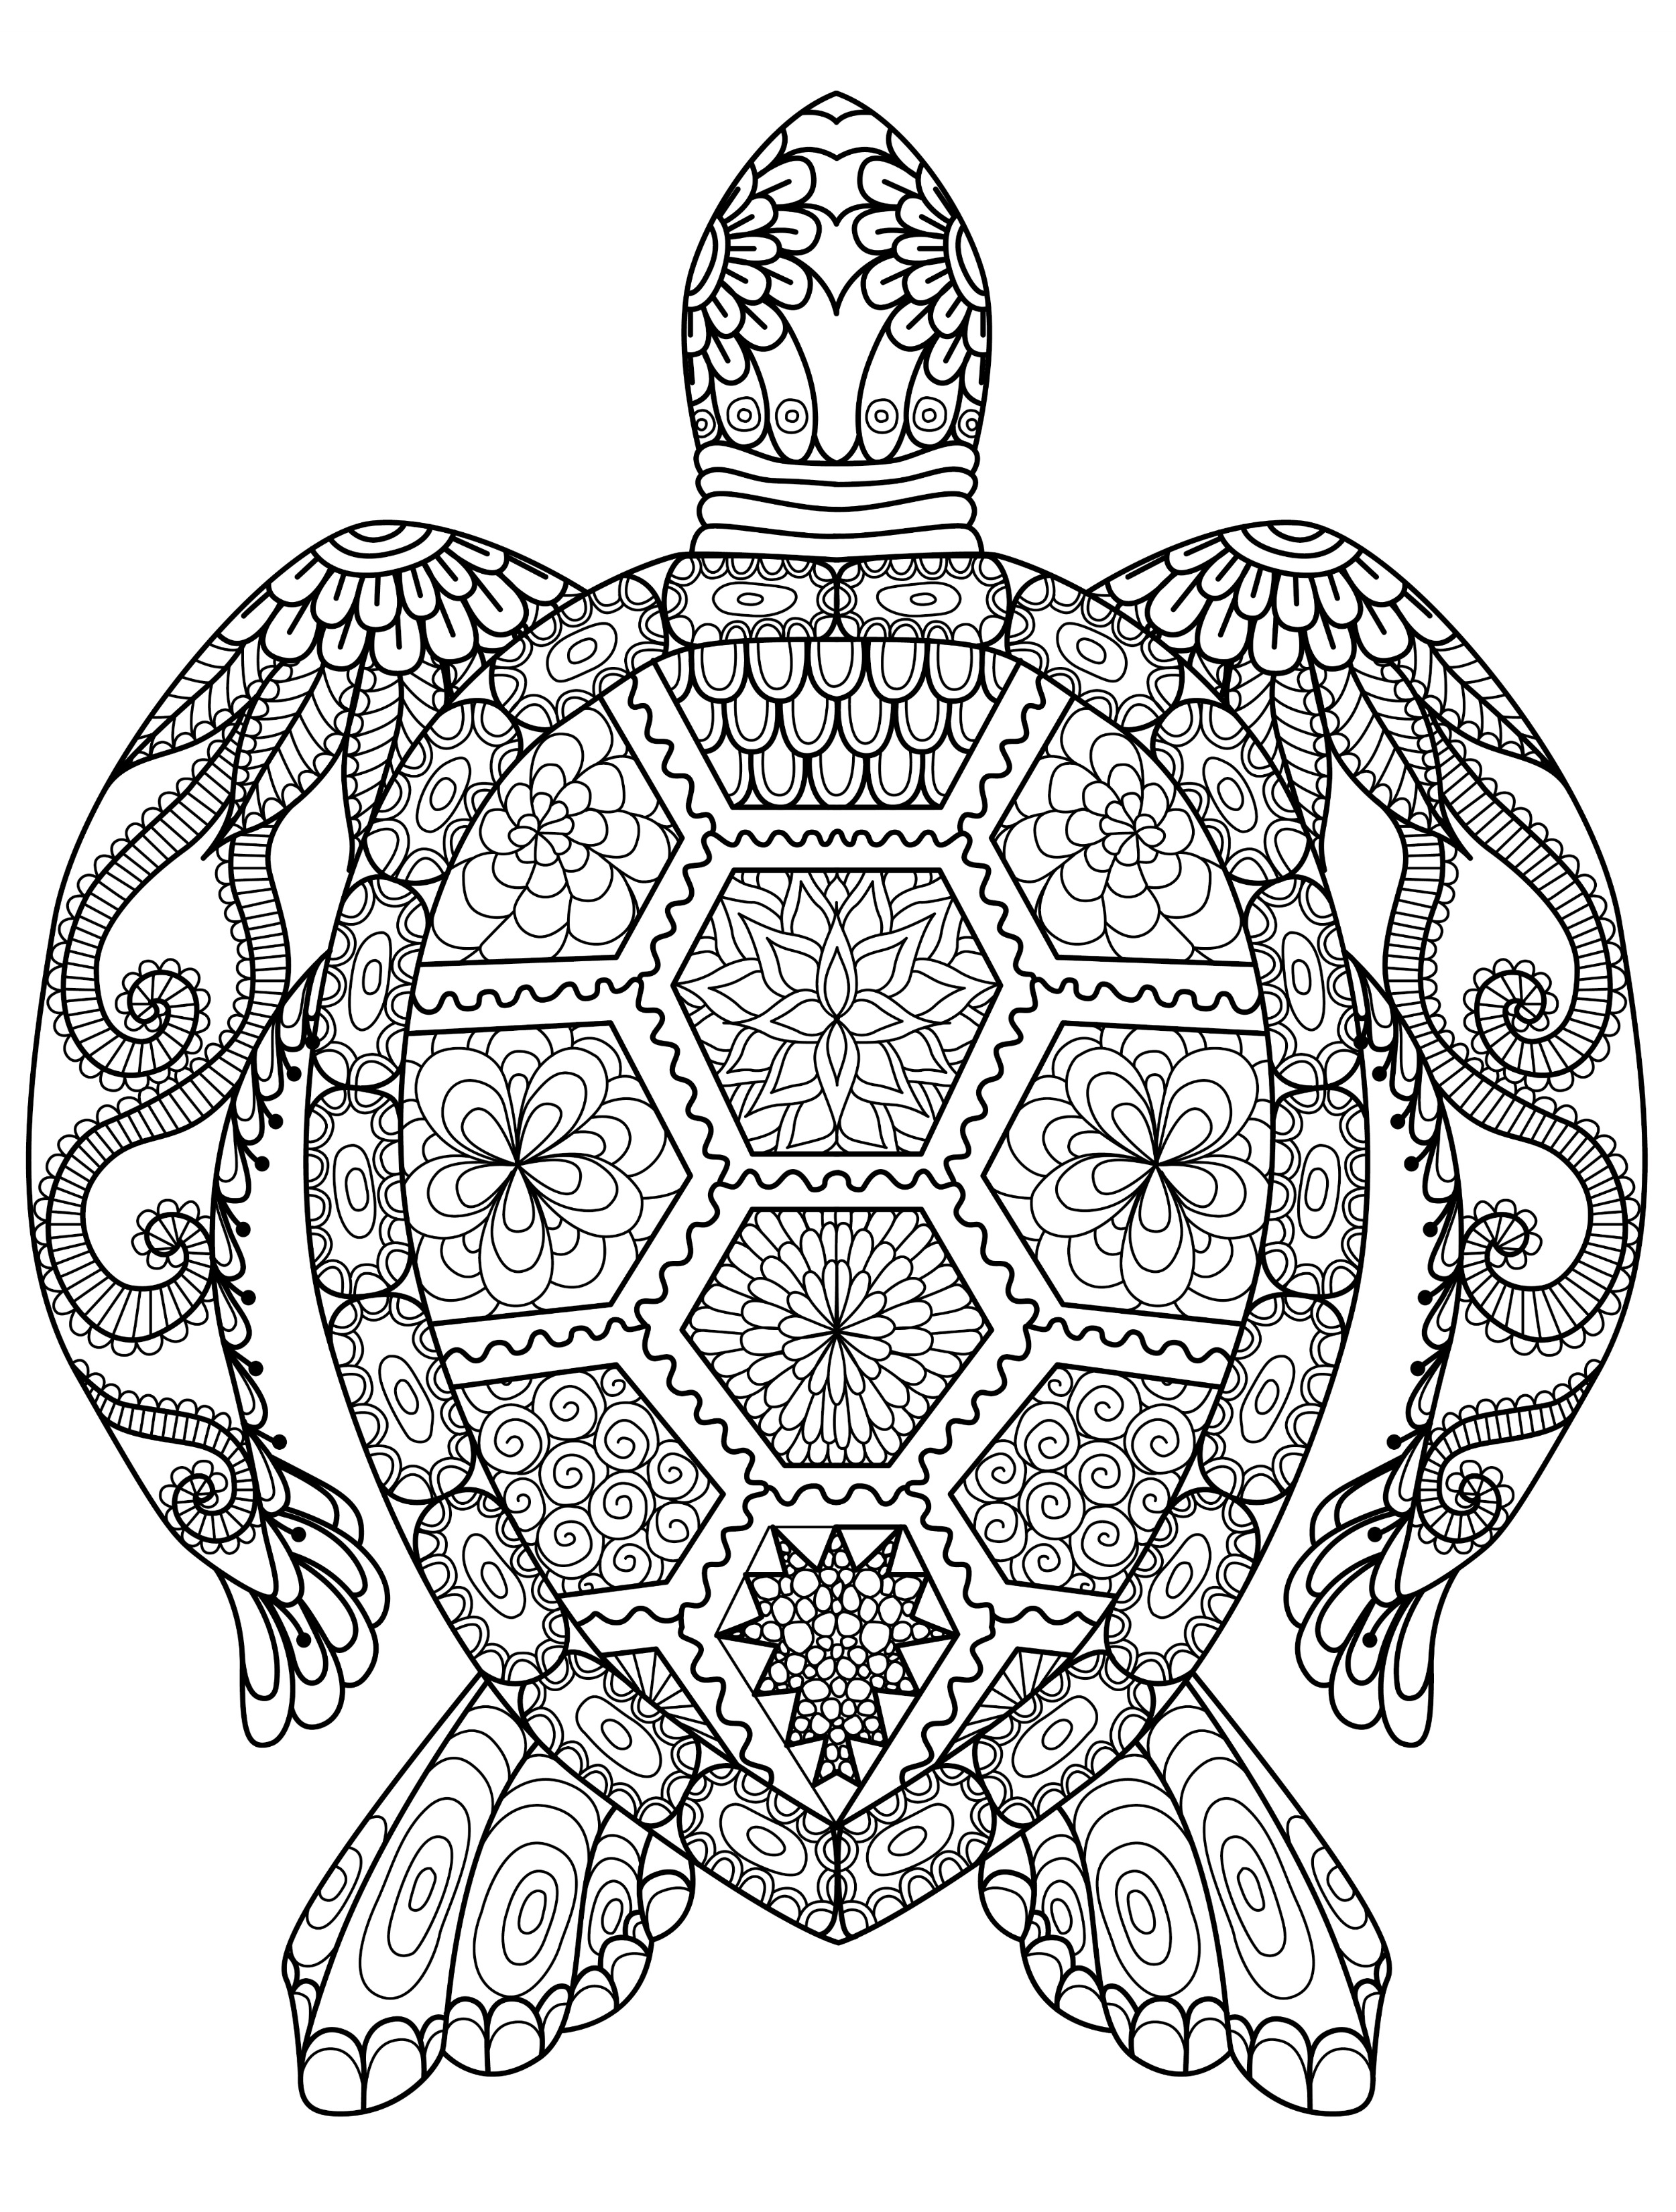 turtle coloring pages for adults - 3